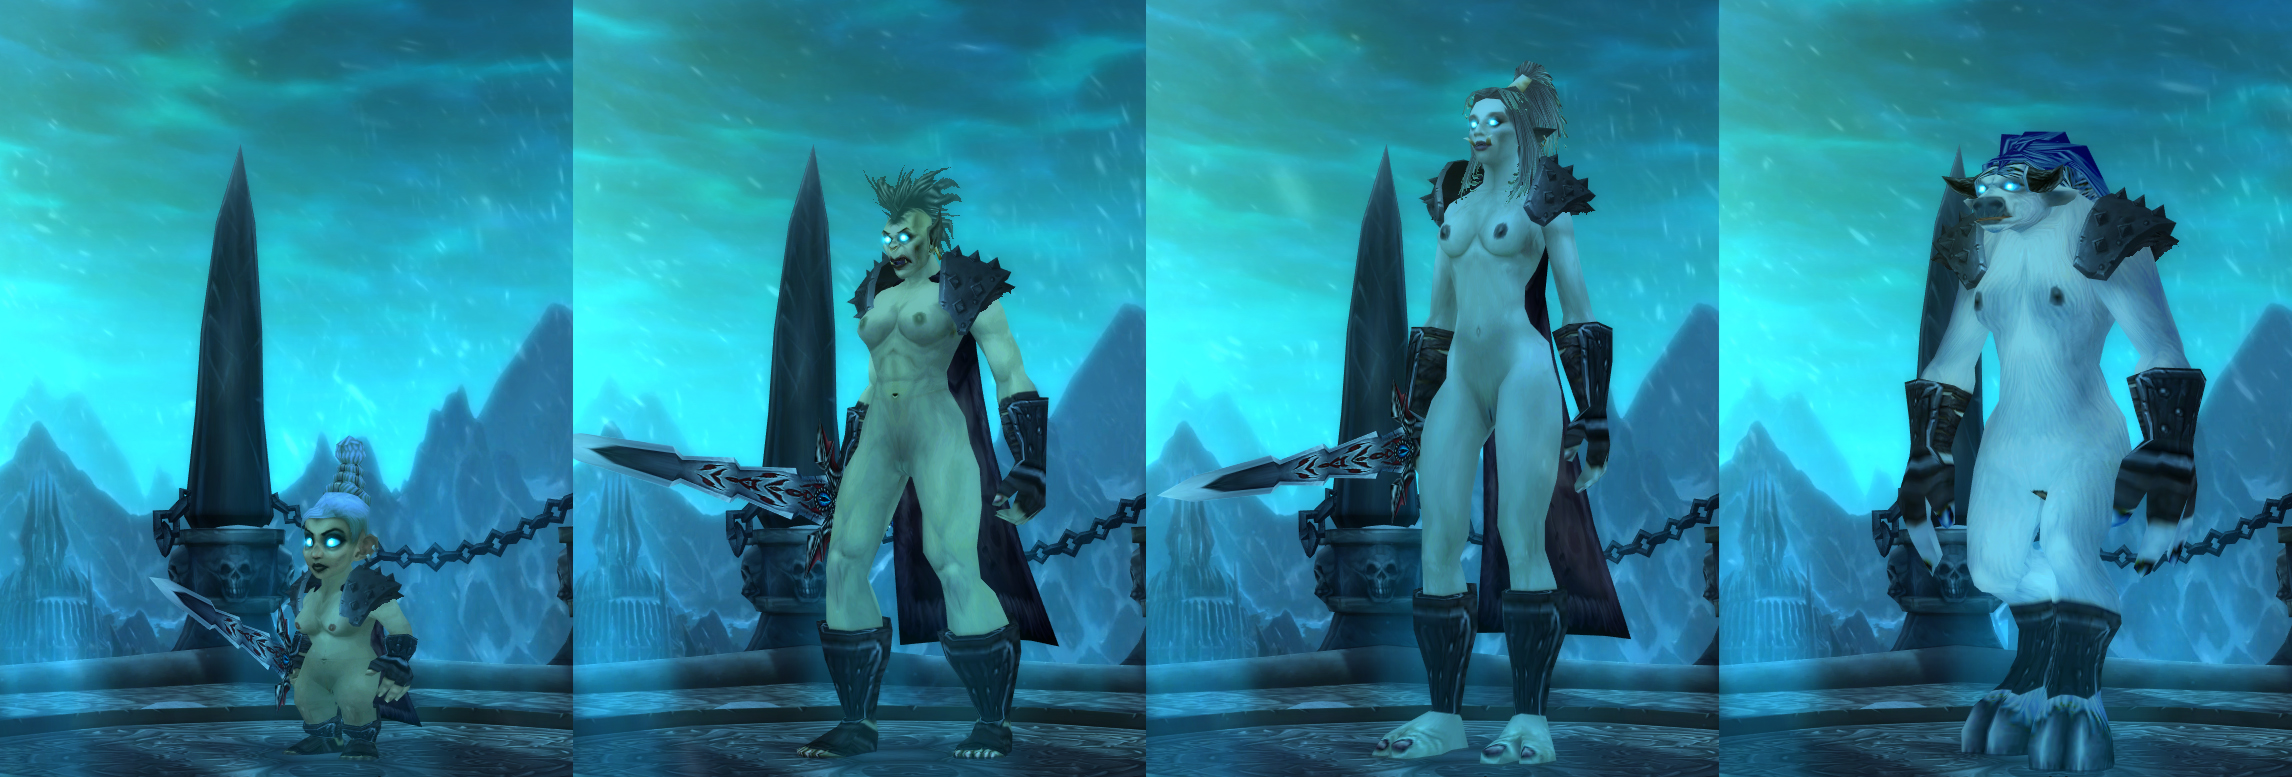 Nude patch world warcraft xxx gallery